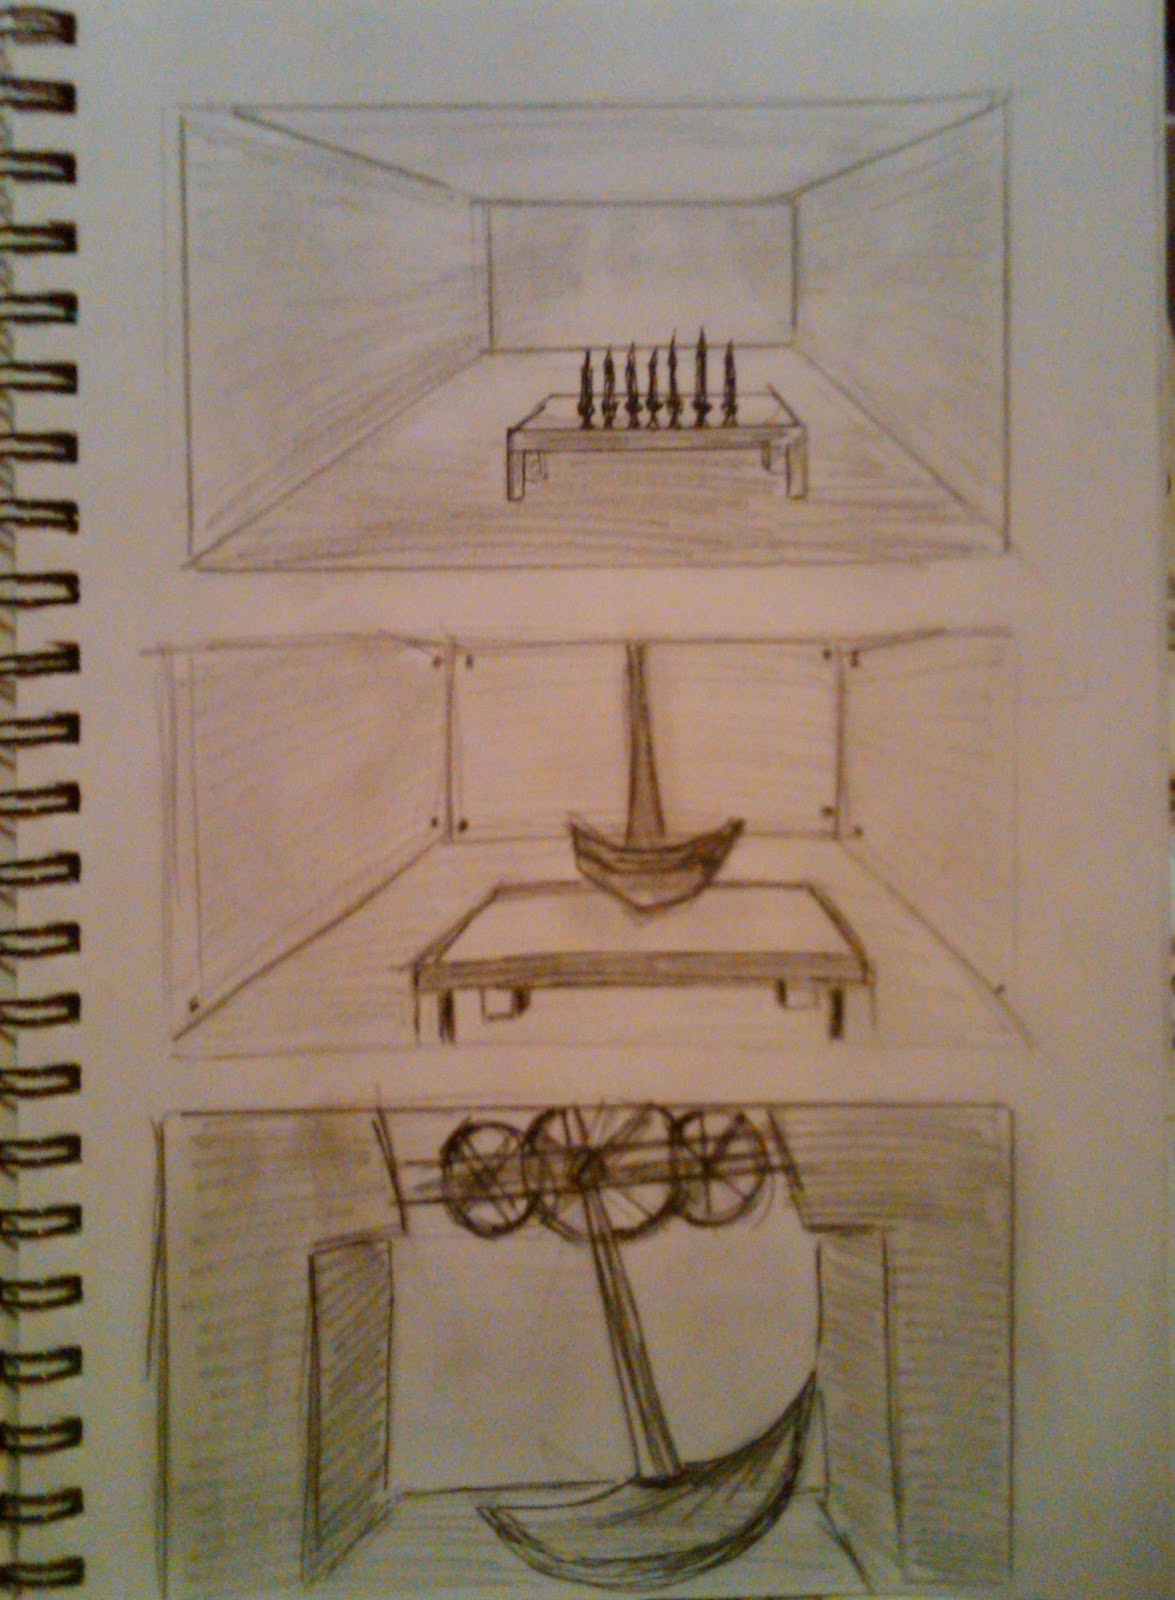 sasha hart cg artist more thumbnails the pit and the pendulum i am think of choosing another description form the pit and the pendulum which is the description of the torture chamber so i think i might need to do some